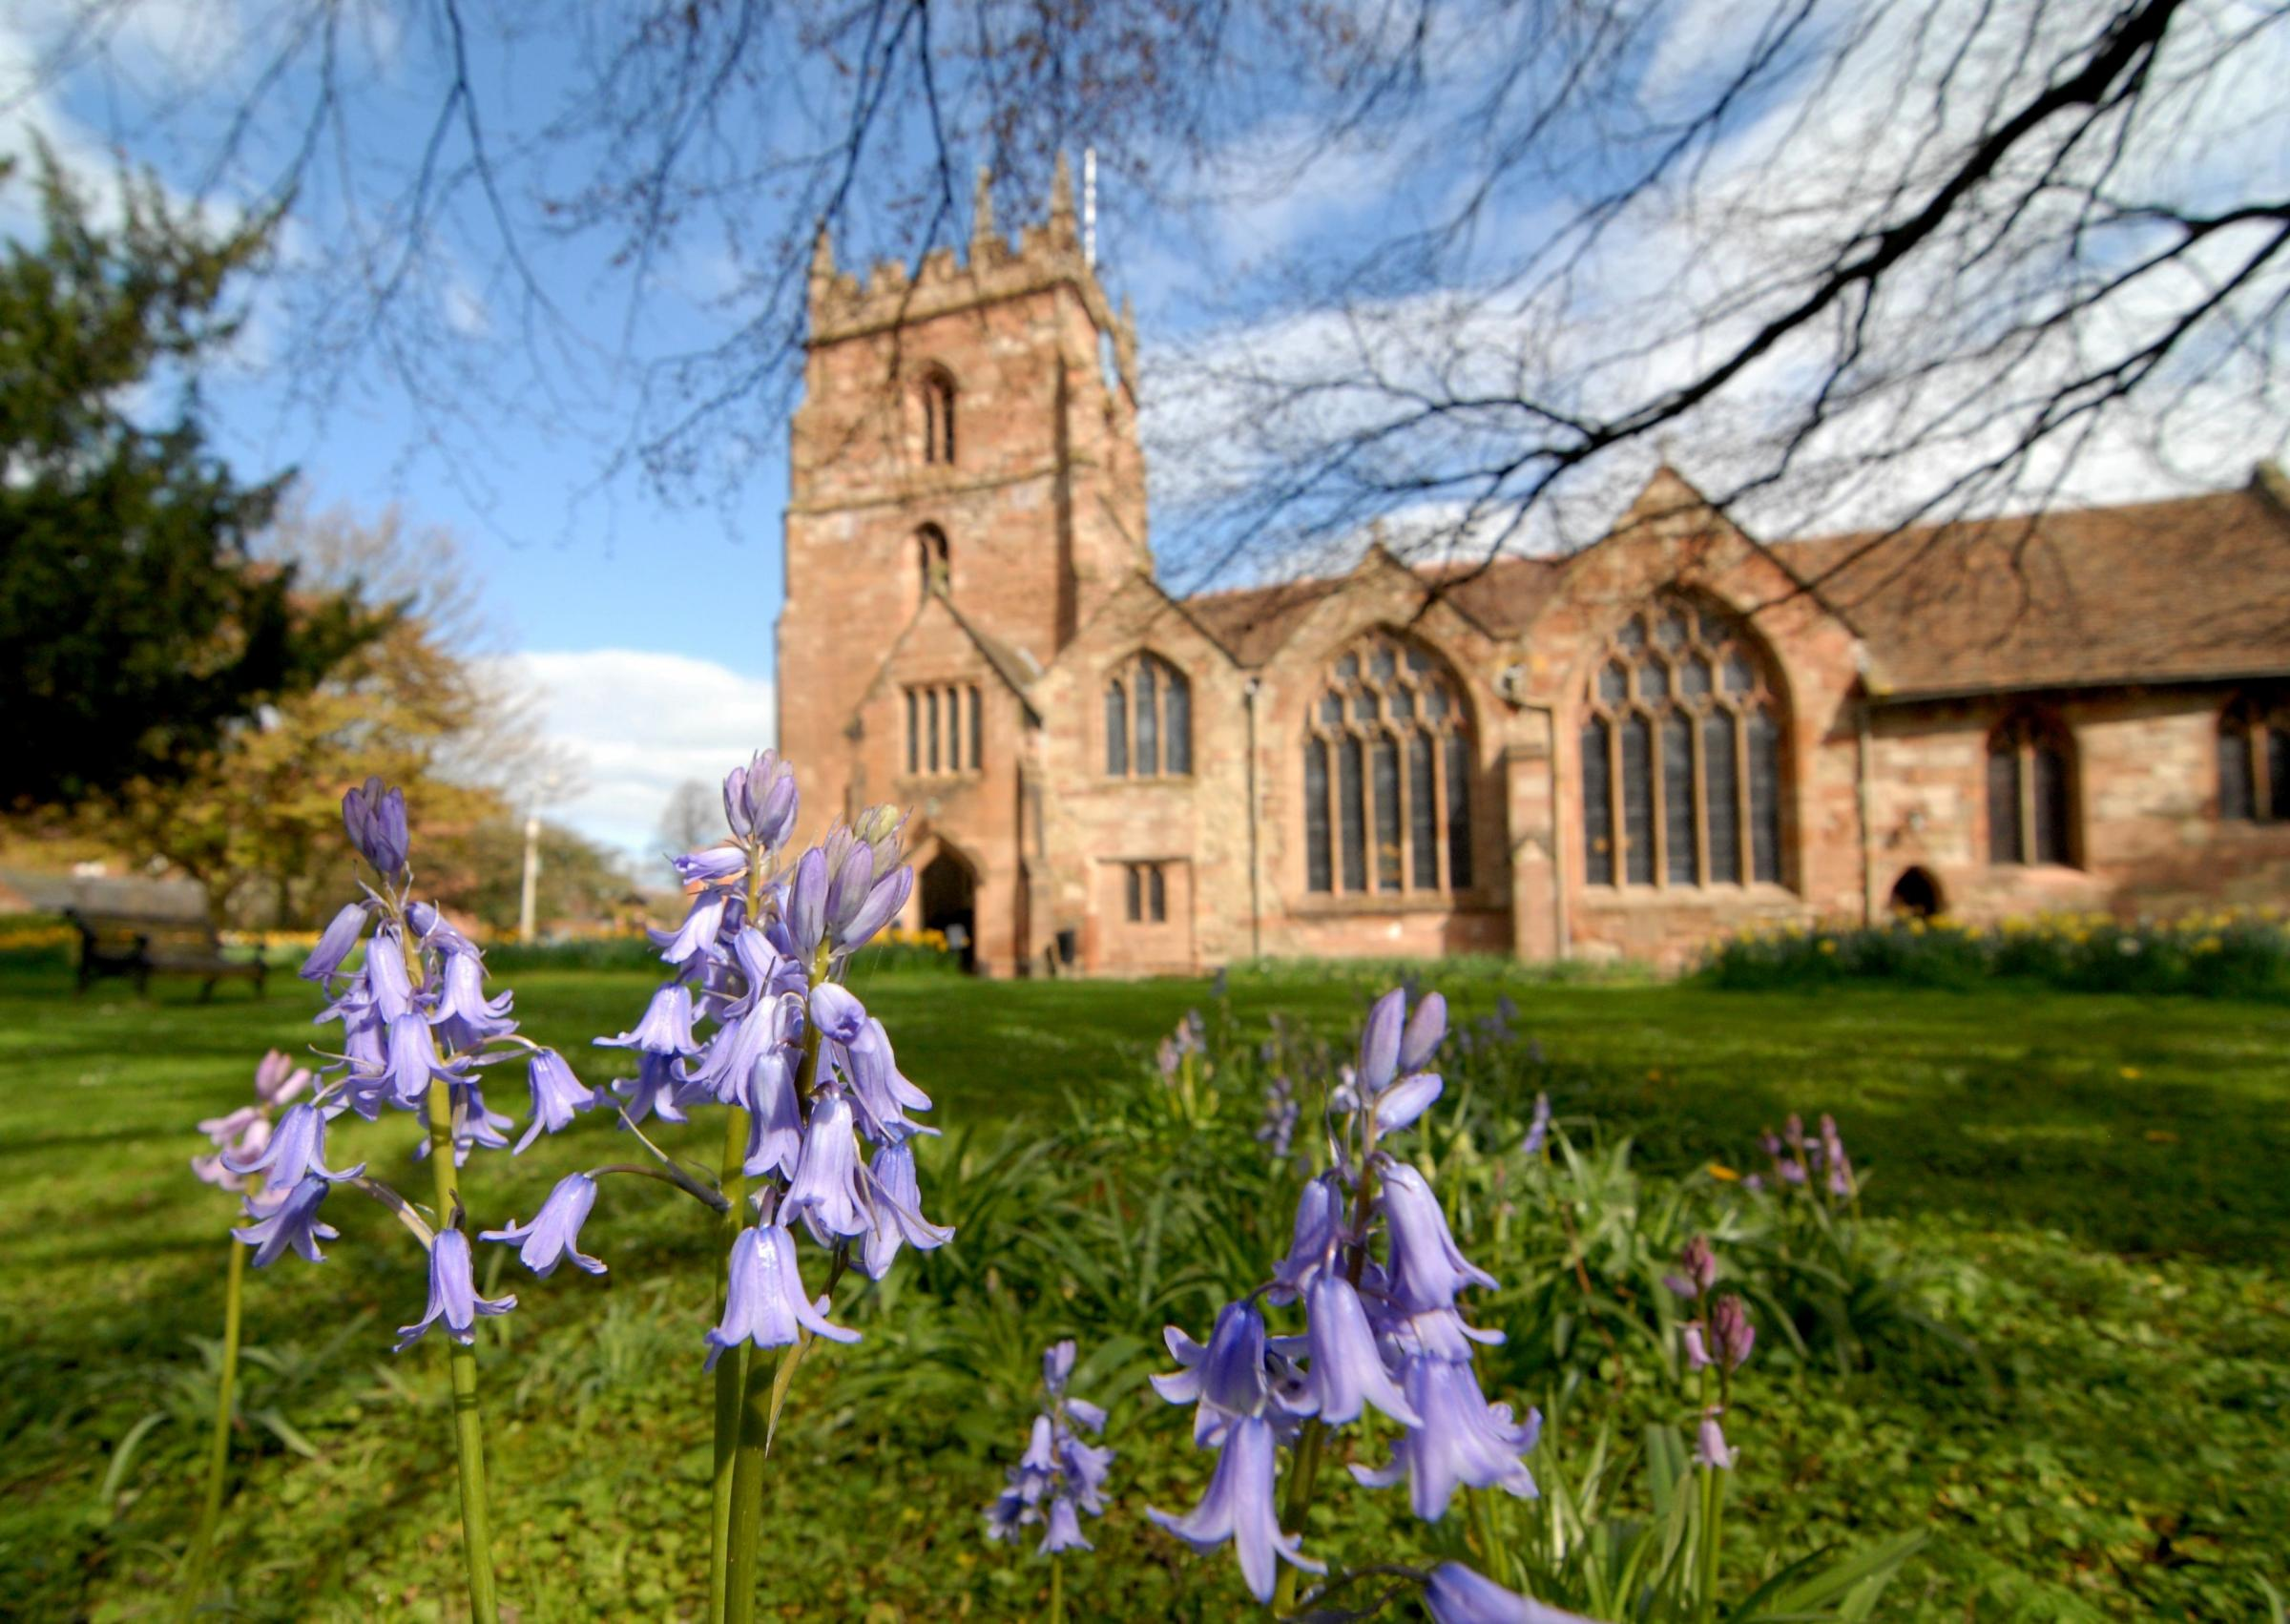 1514573401. 13/04/14. Bluebells in the grounds of St John in Bedwardine church. Picture by Nick Toogood. (5377740)